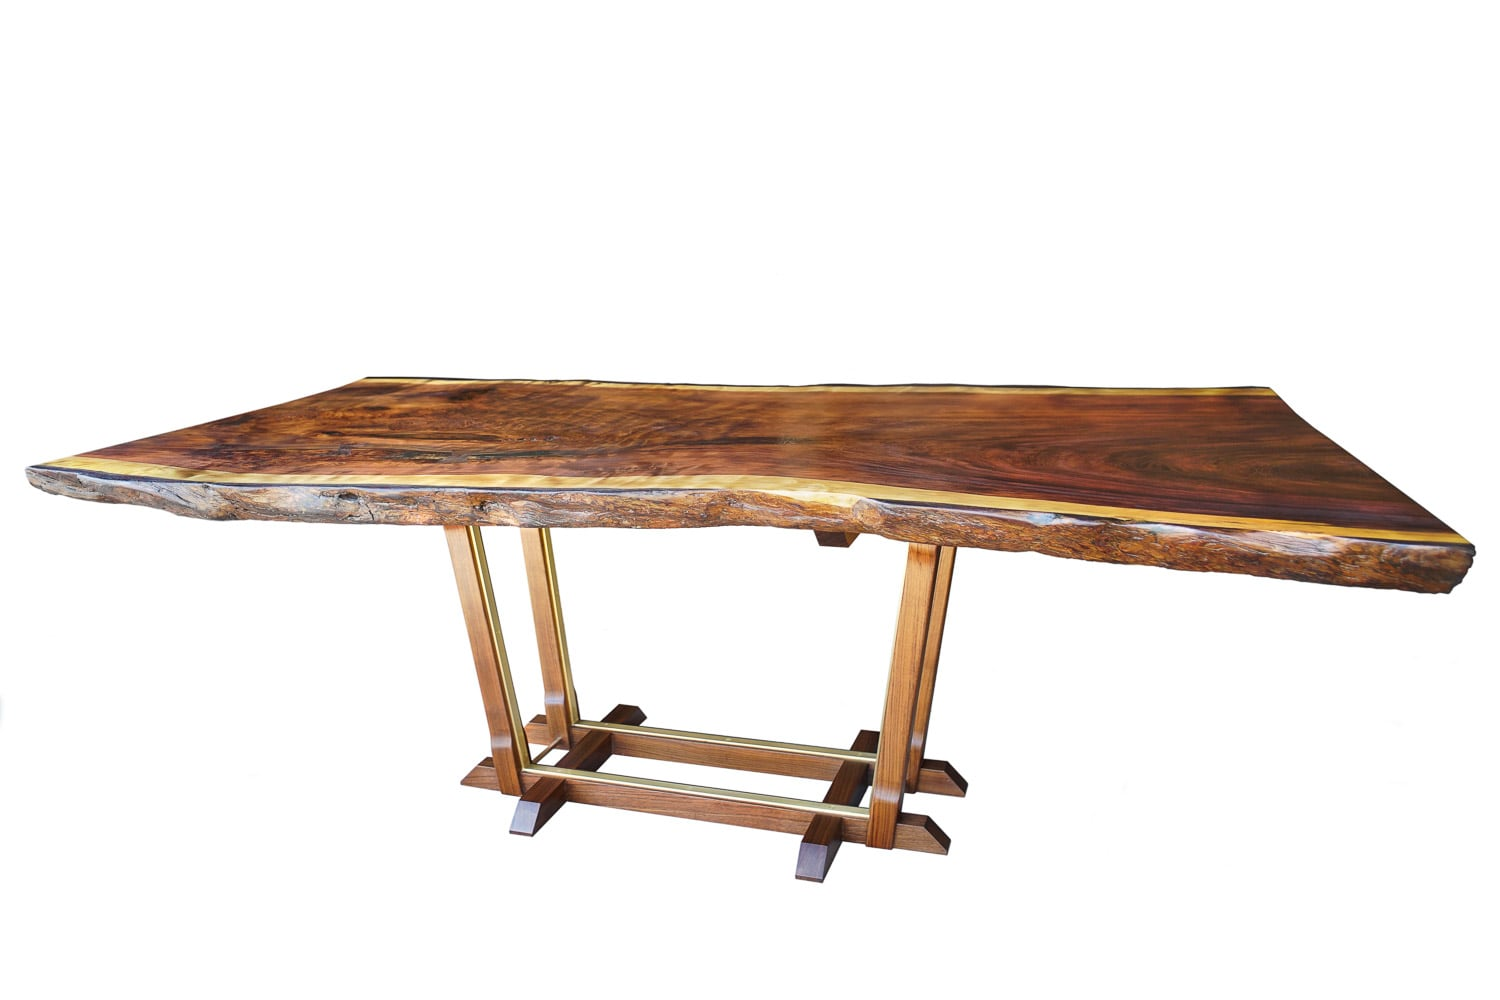 Redwood-table-5.jpg